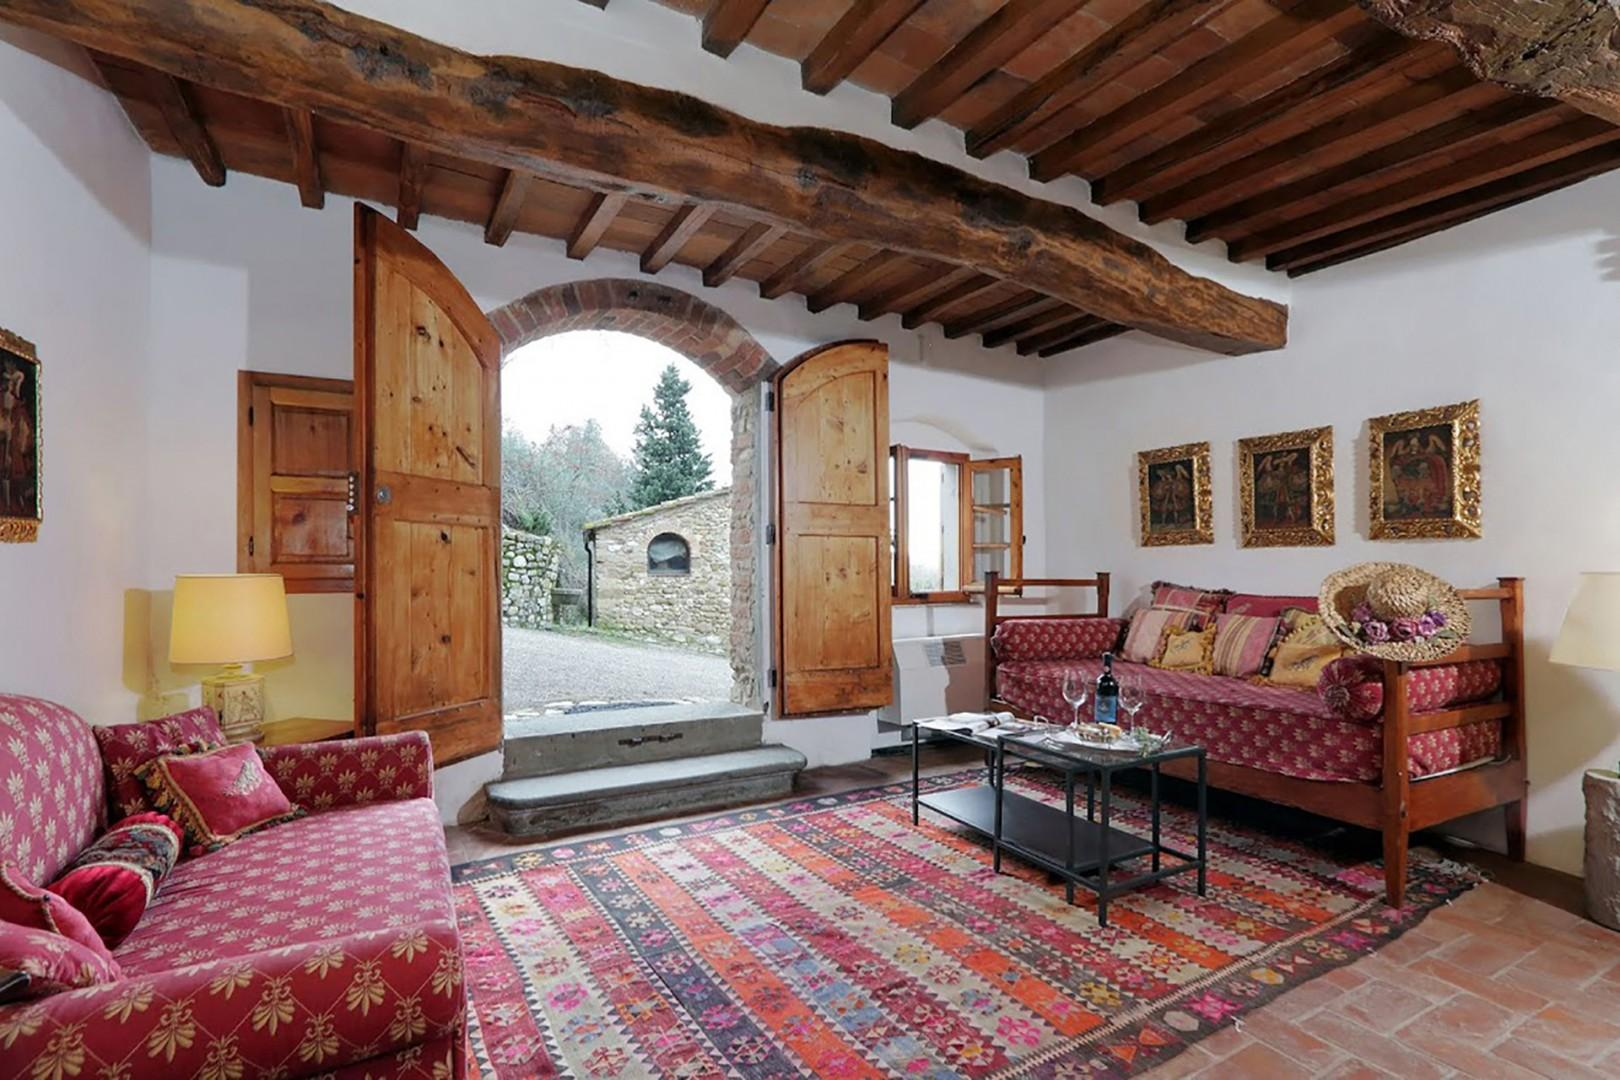 The ground floor apartment in Villa Poggio is a very inviting one bedroom apartment.